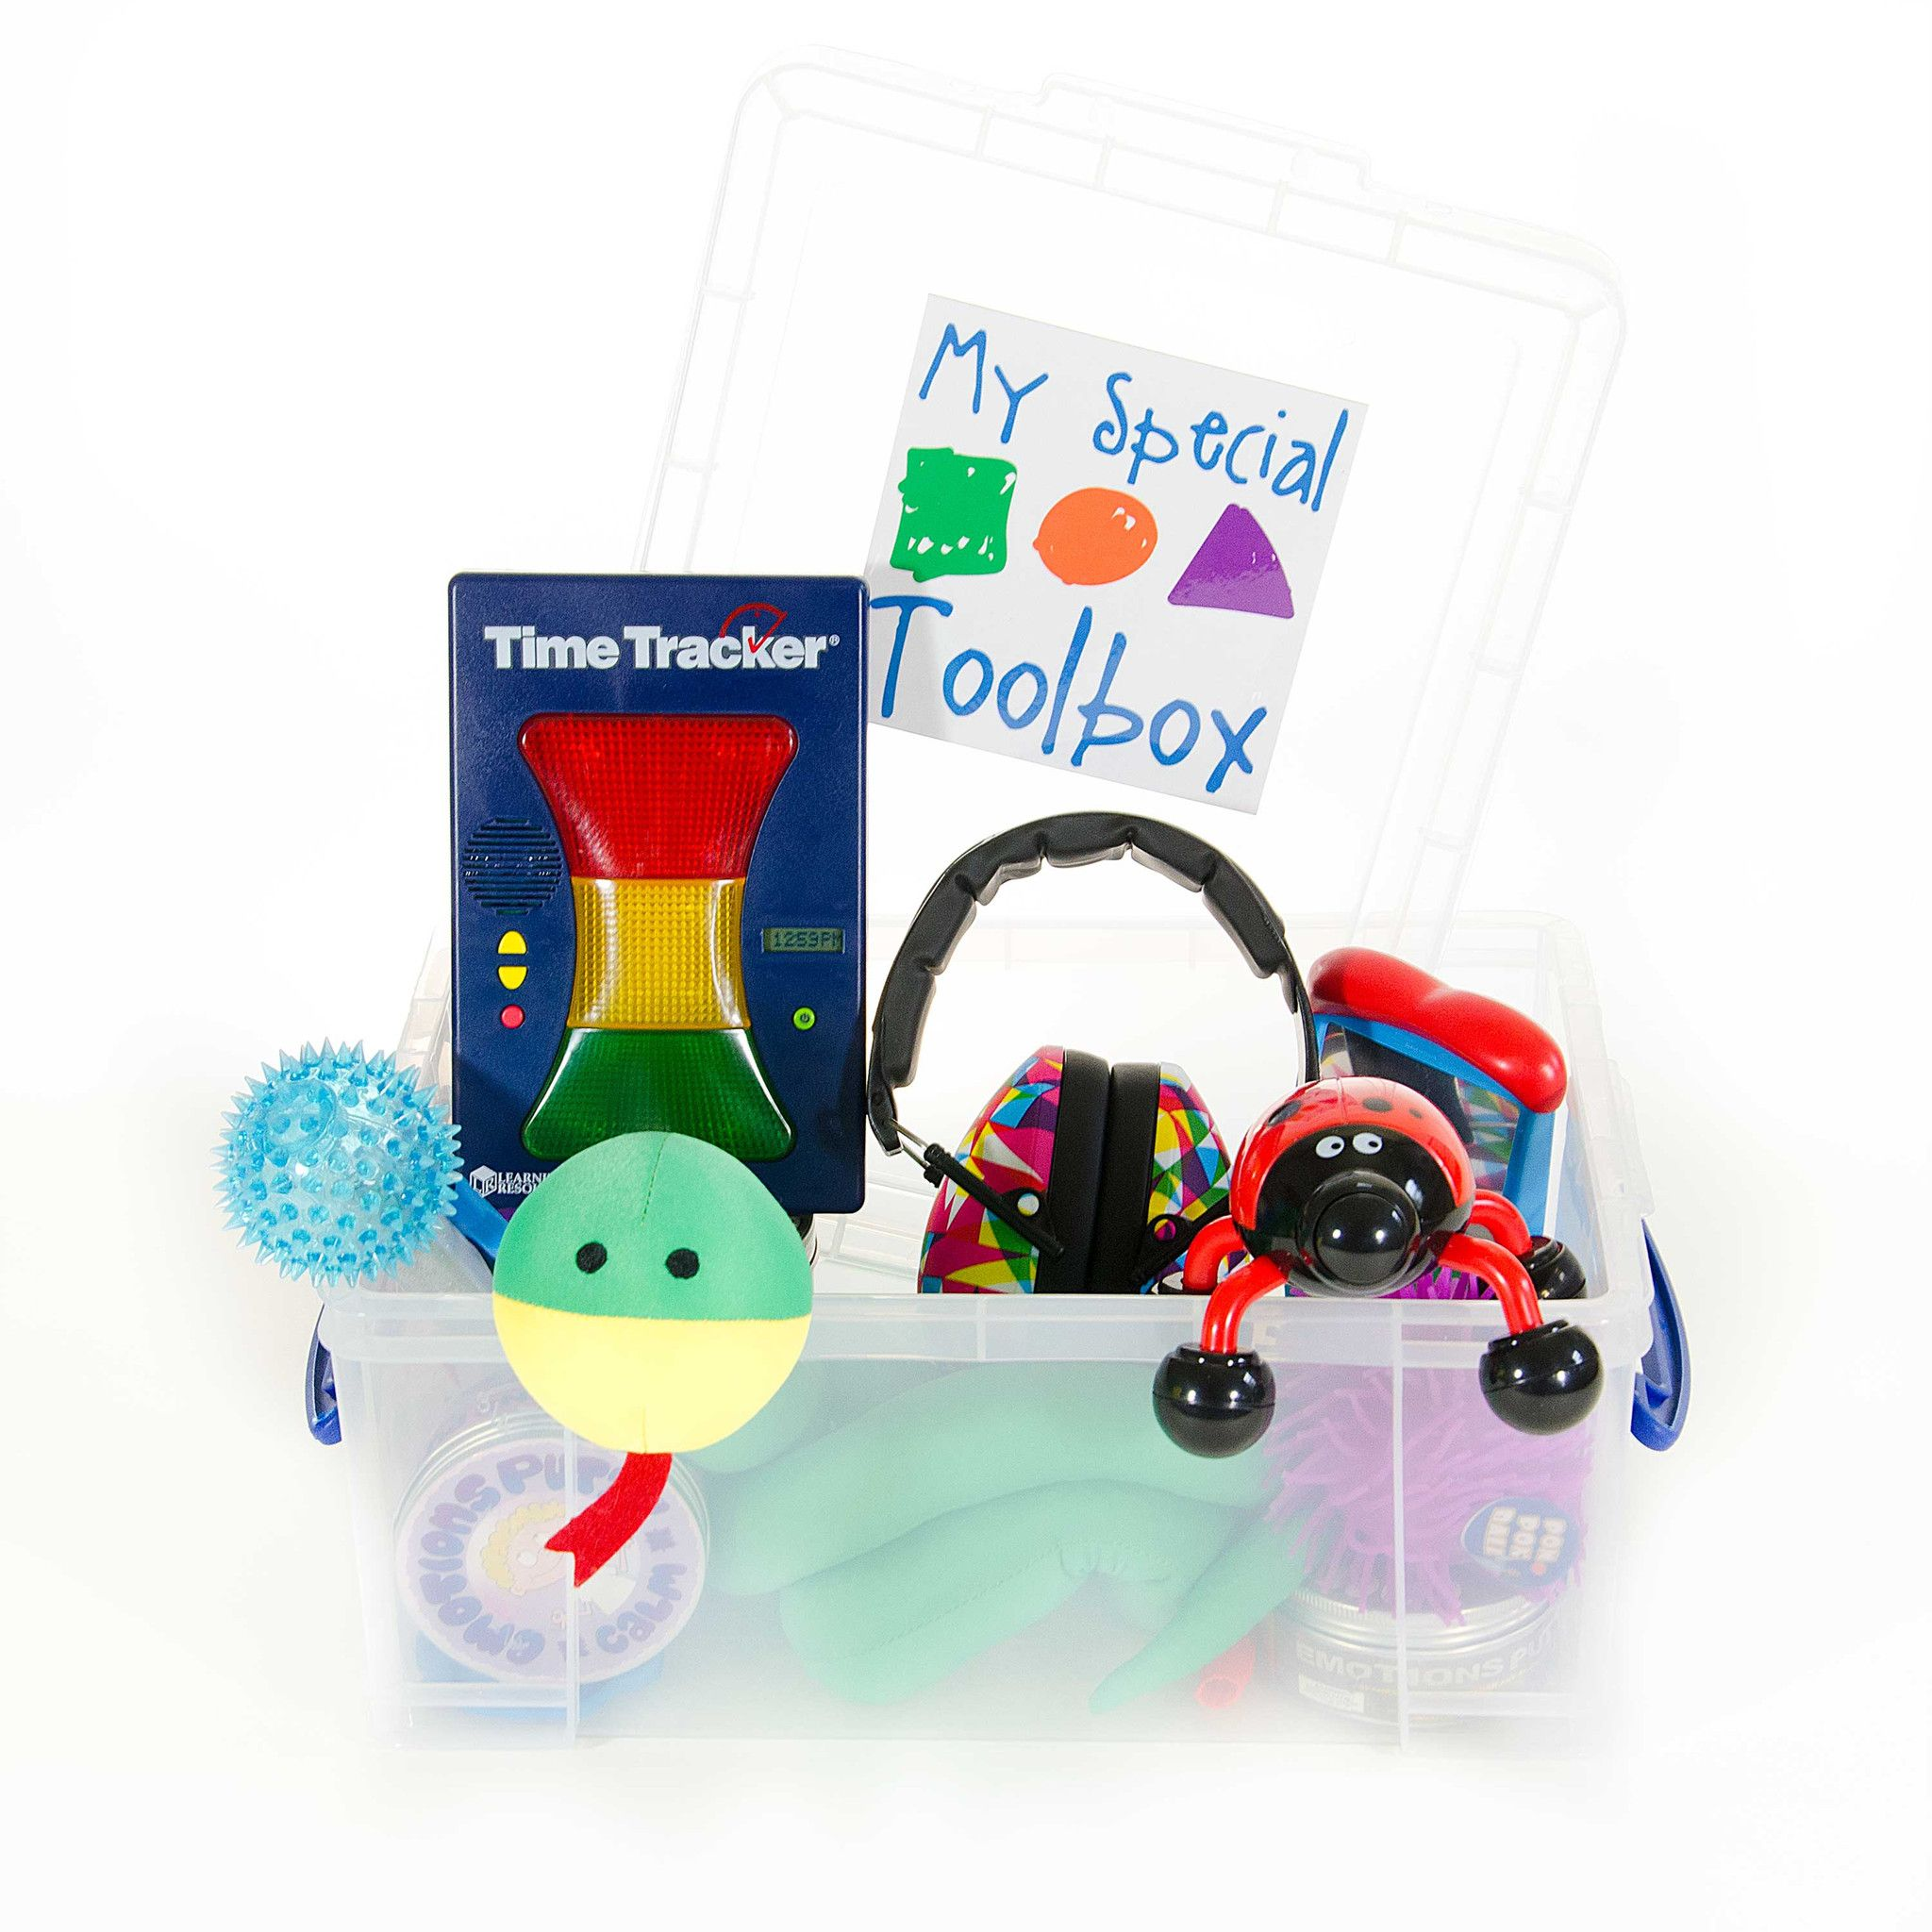 Sensory Seekers Toolbox (With images) Sensory seeker